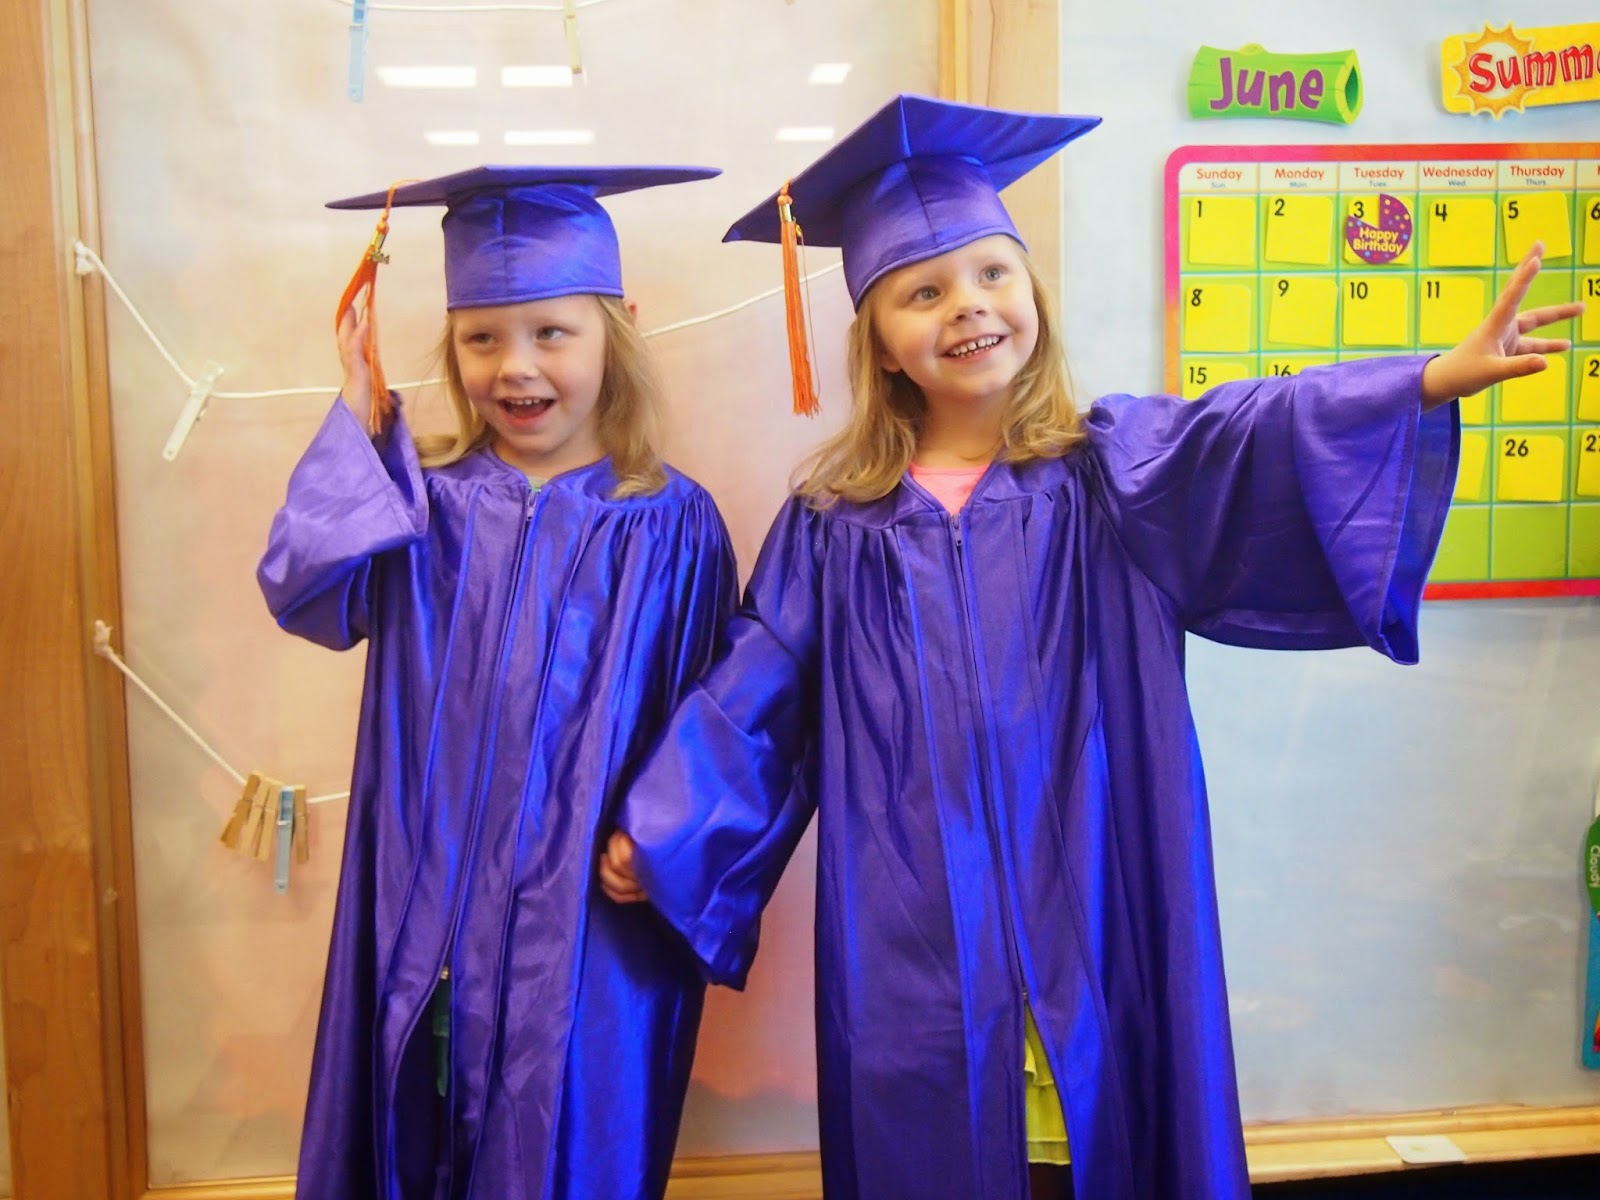 Its Hard To Believe But The Girls Have Graduated Preschool And Are Now In Kindergarten We Not Sure Where Time Has Gone It Flew By